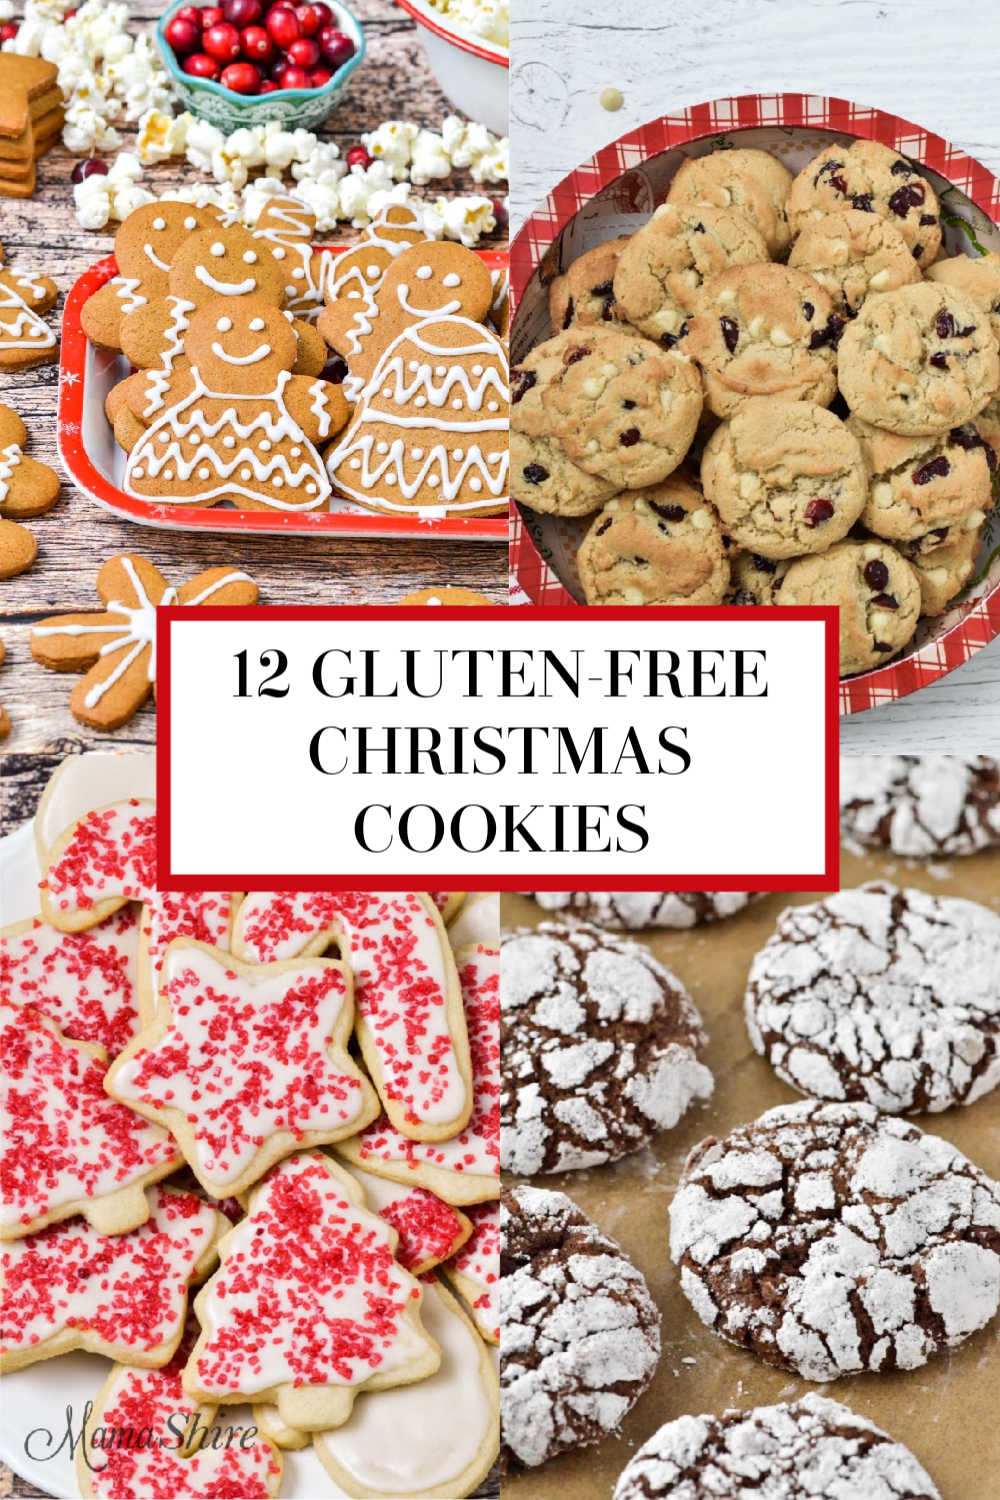 A picture of classic gluten-free Christmas Cookies